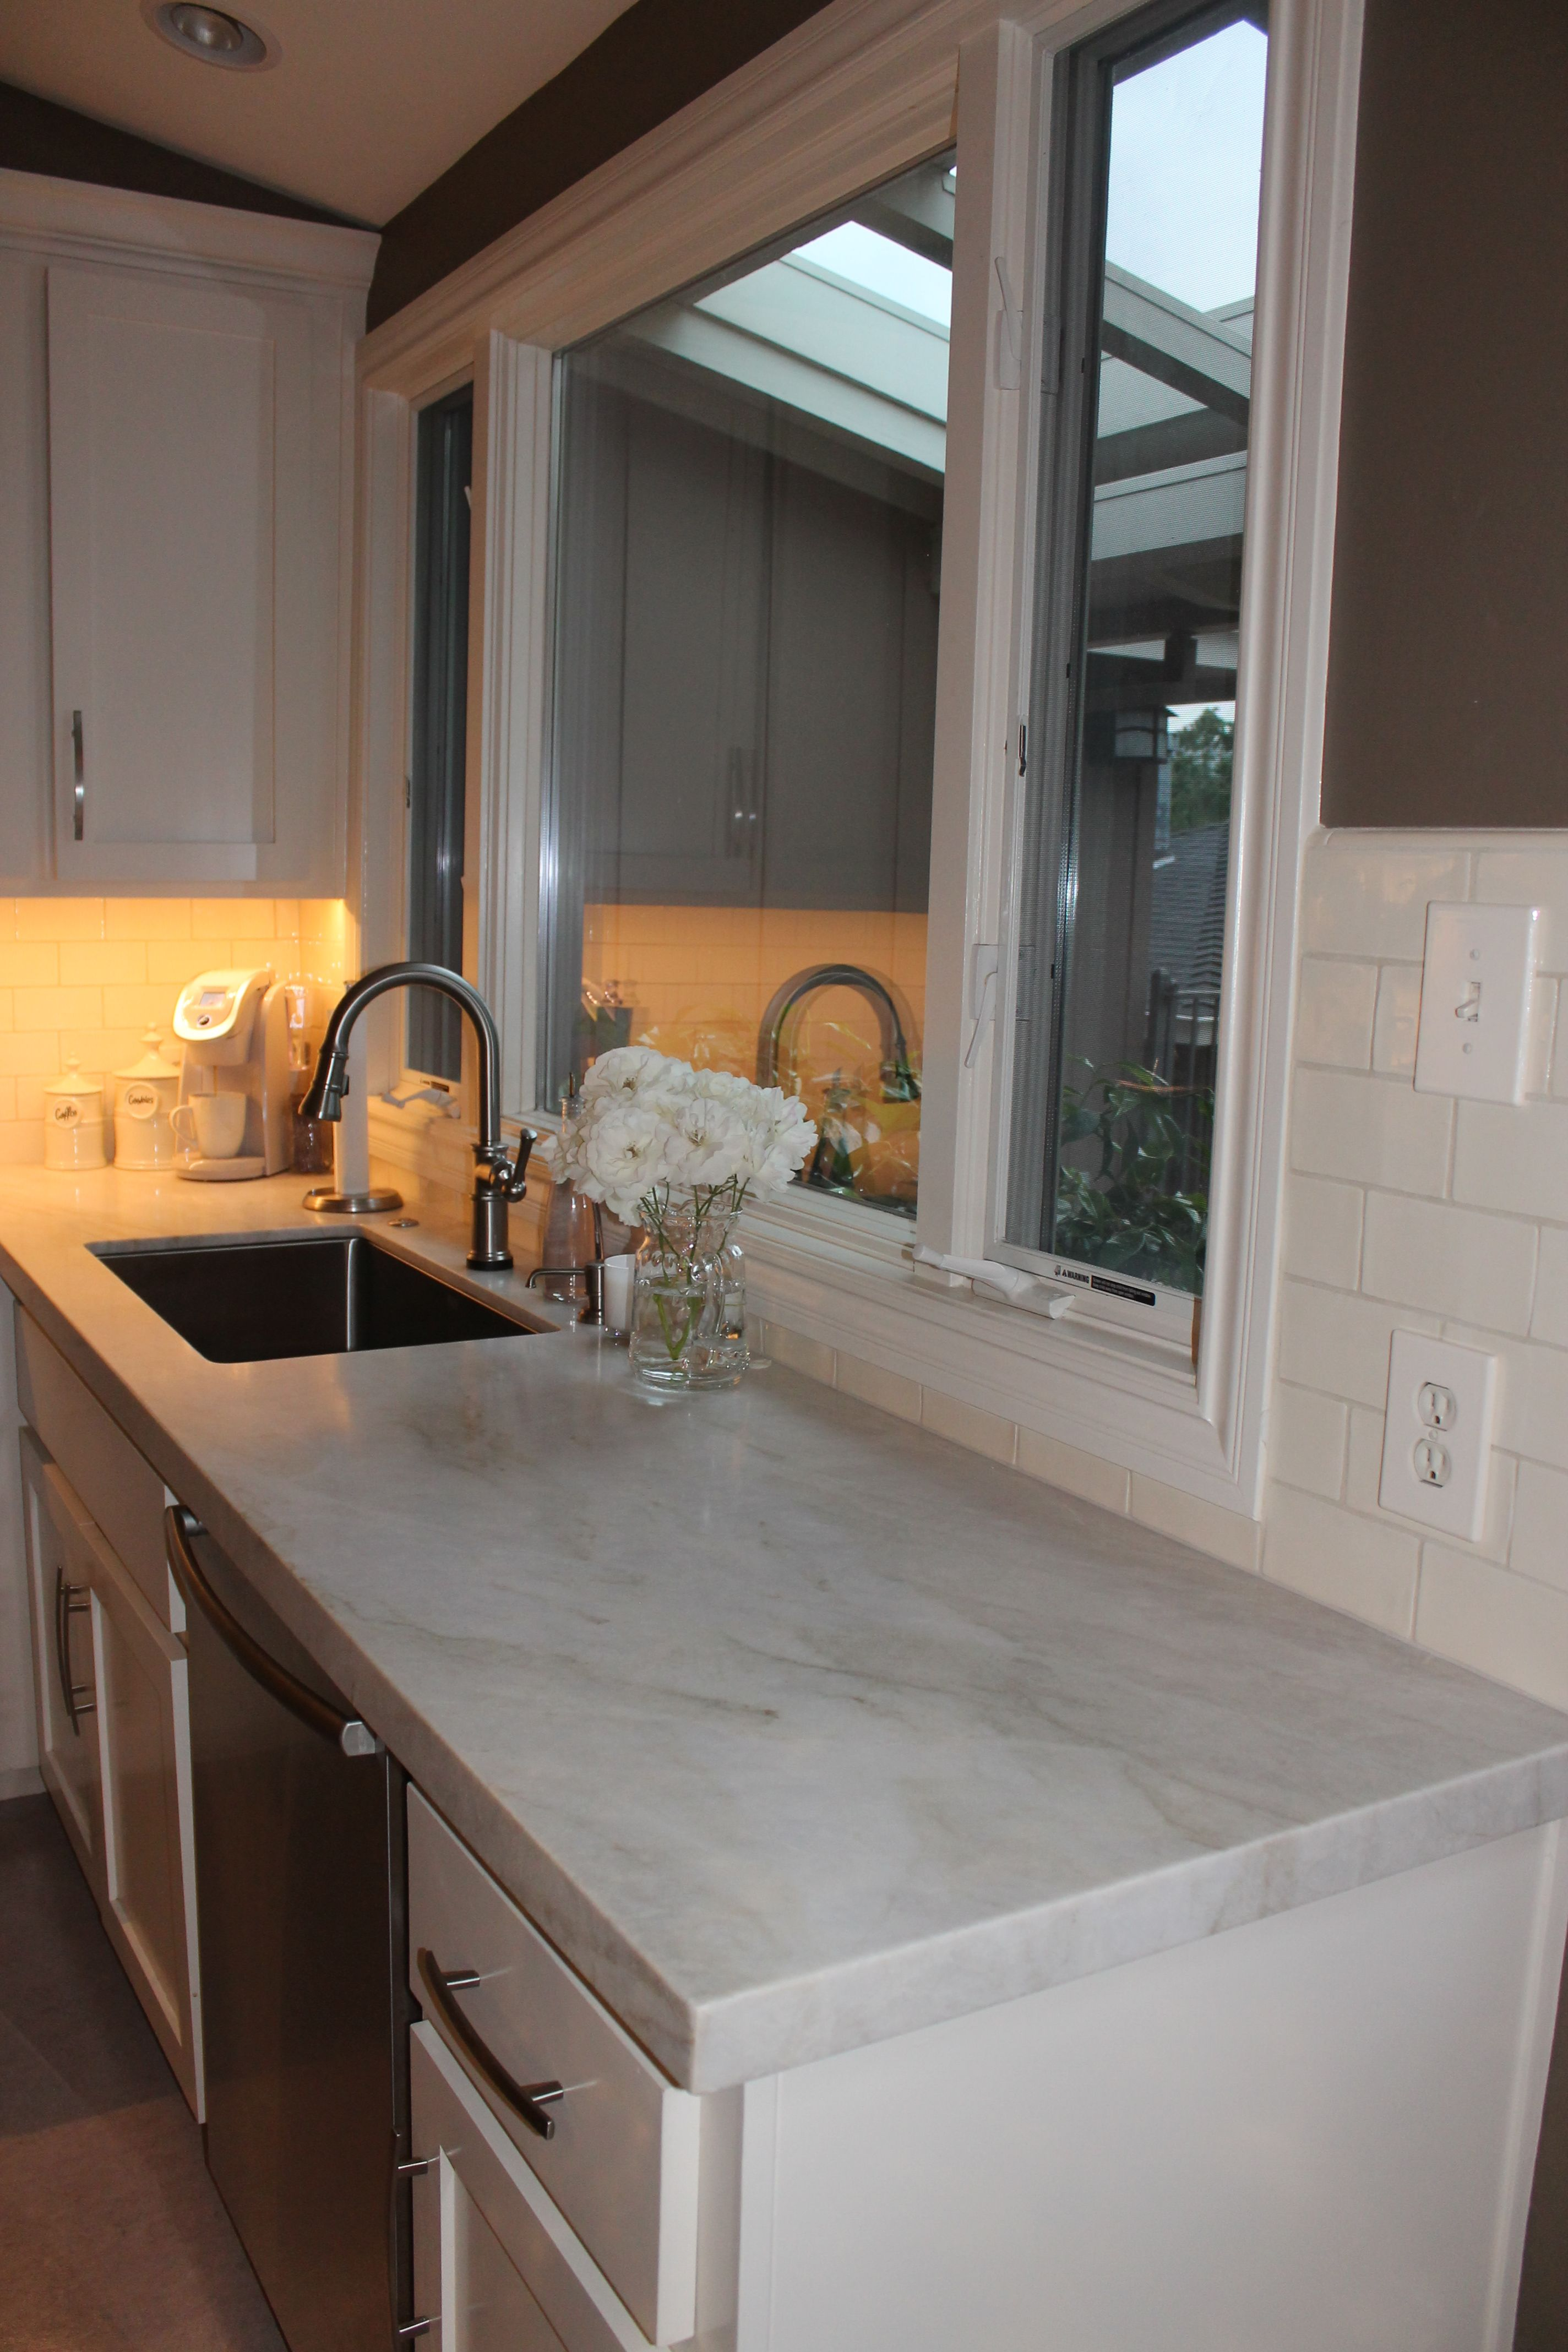 Honed Quartz Countertops Walker Zanger Honed Perla Venata Quartzite Counters 2